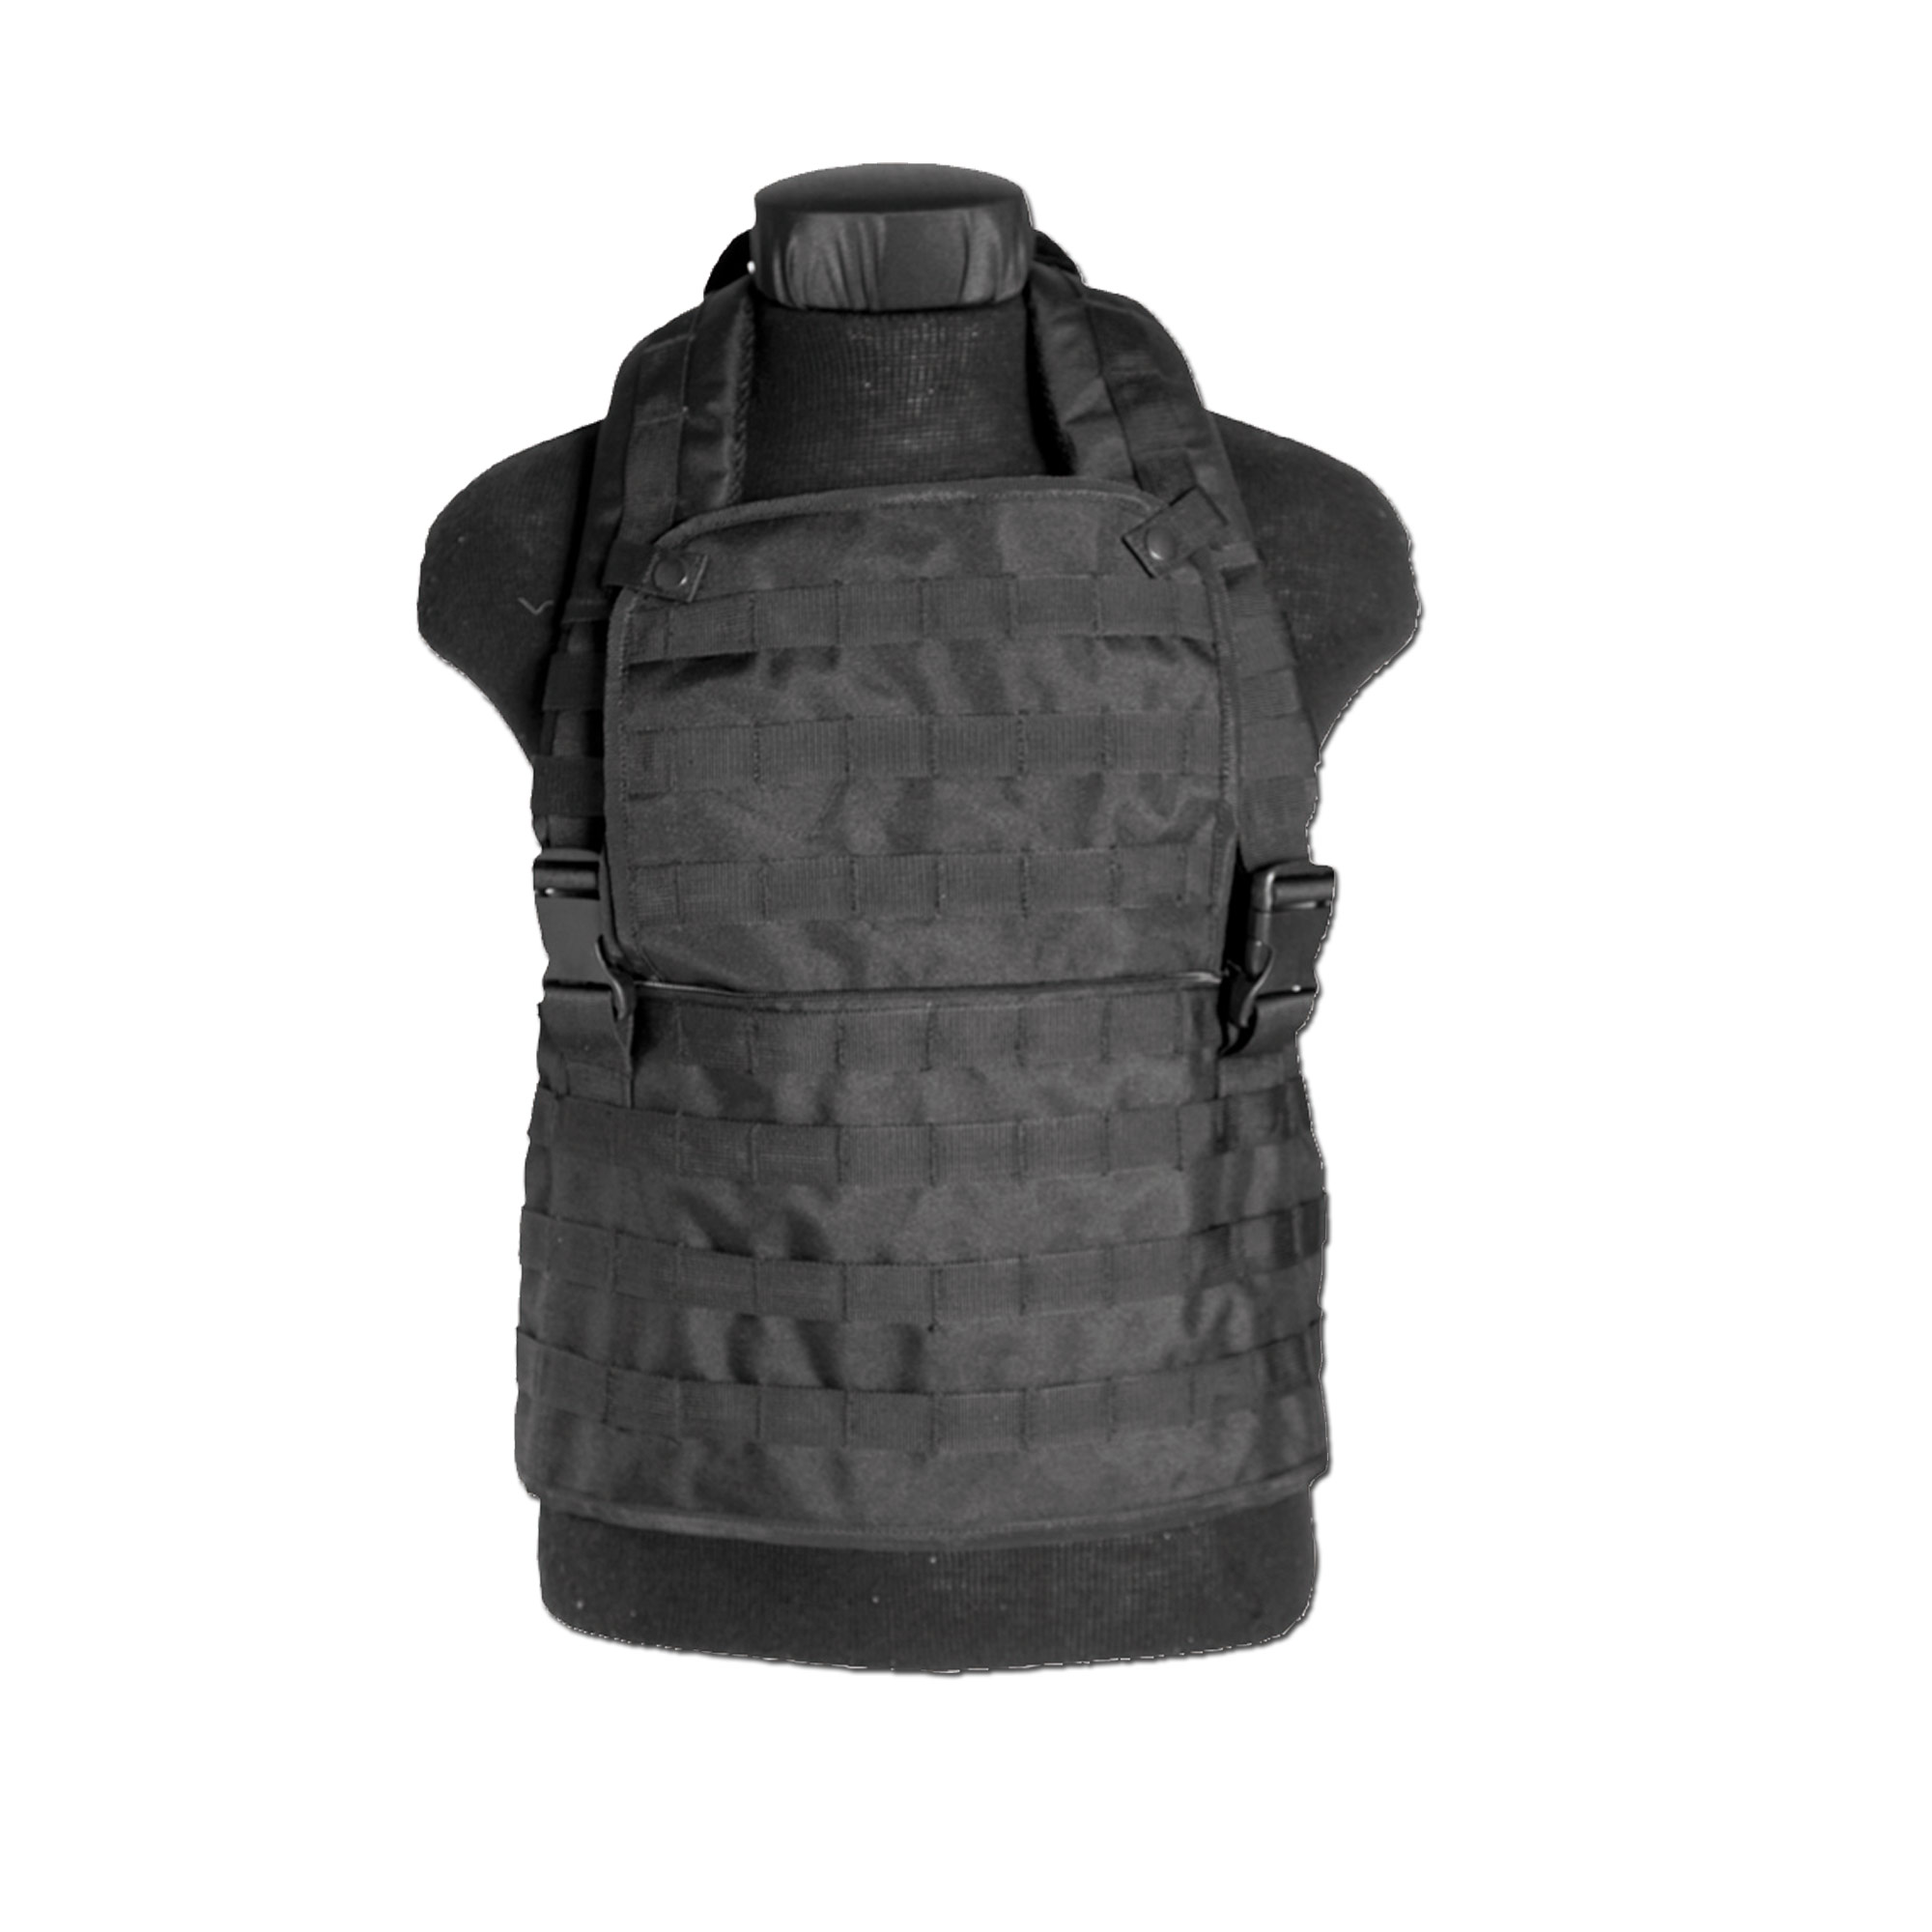 Chest Rig MOLLE expandable schwarz